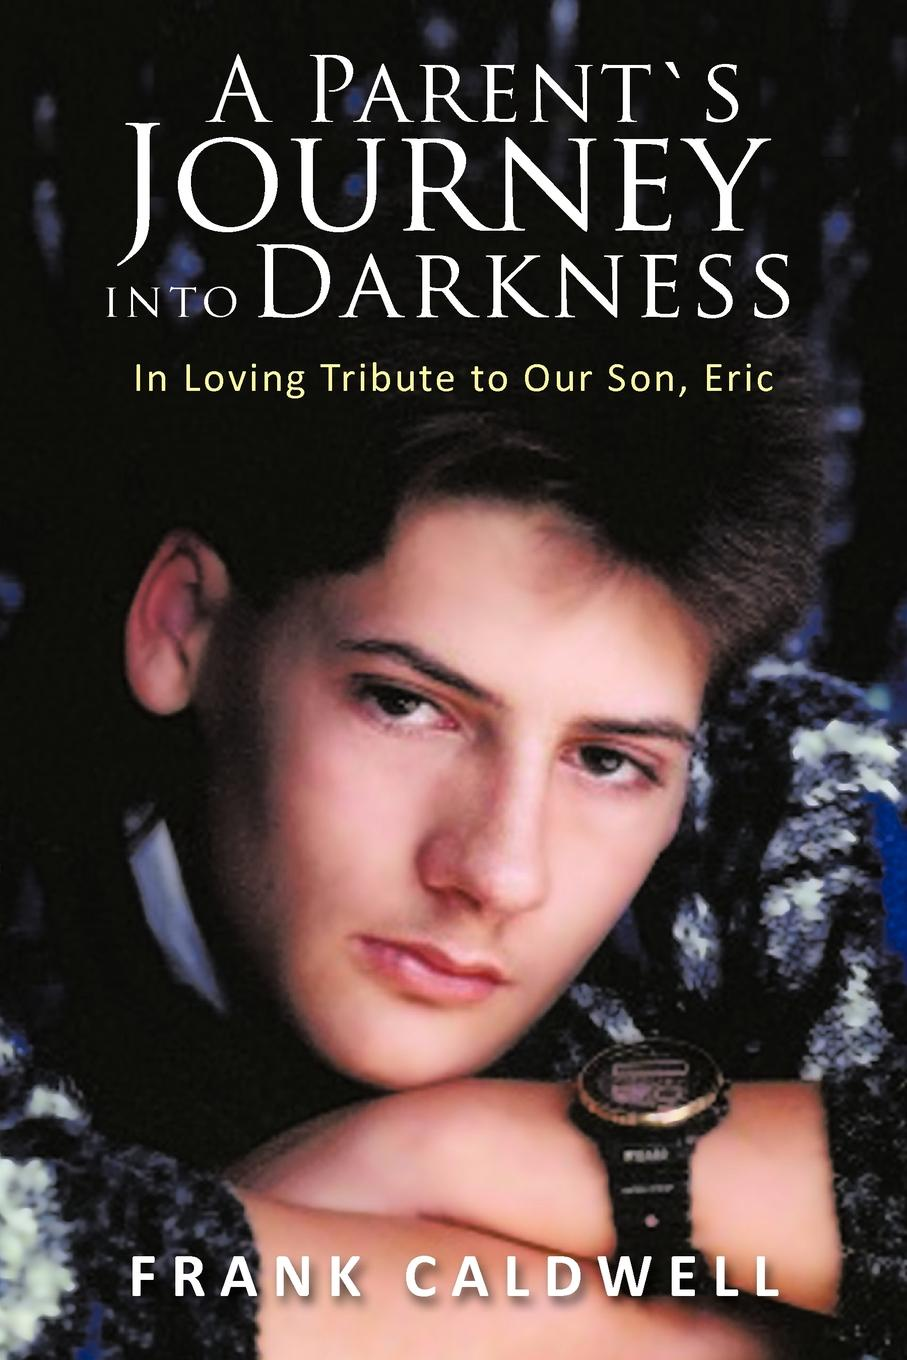 Frank Caldwell A PARENT.S JOURNEY INTO DARKNESS. In Loving Tribute to Our Son, Eric sylvestra marrick guardians in our journey